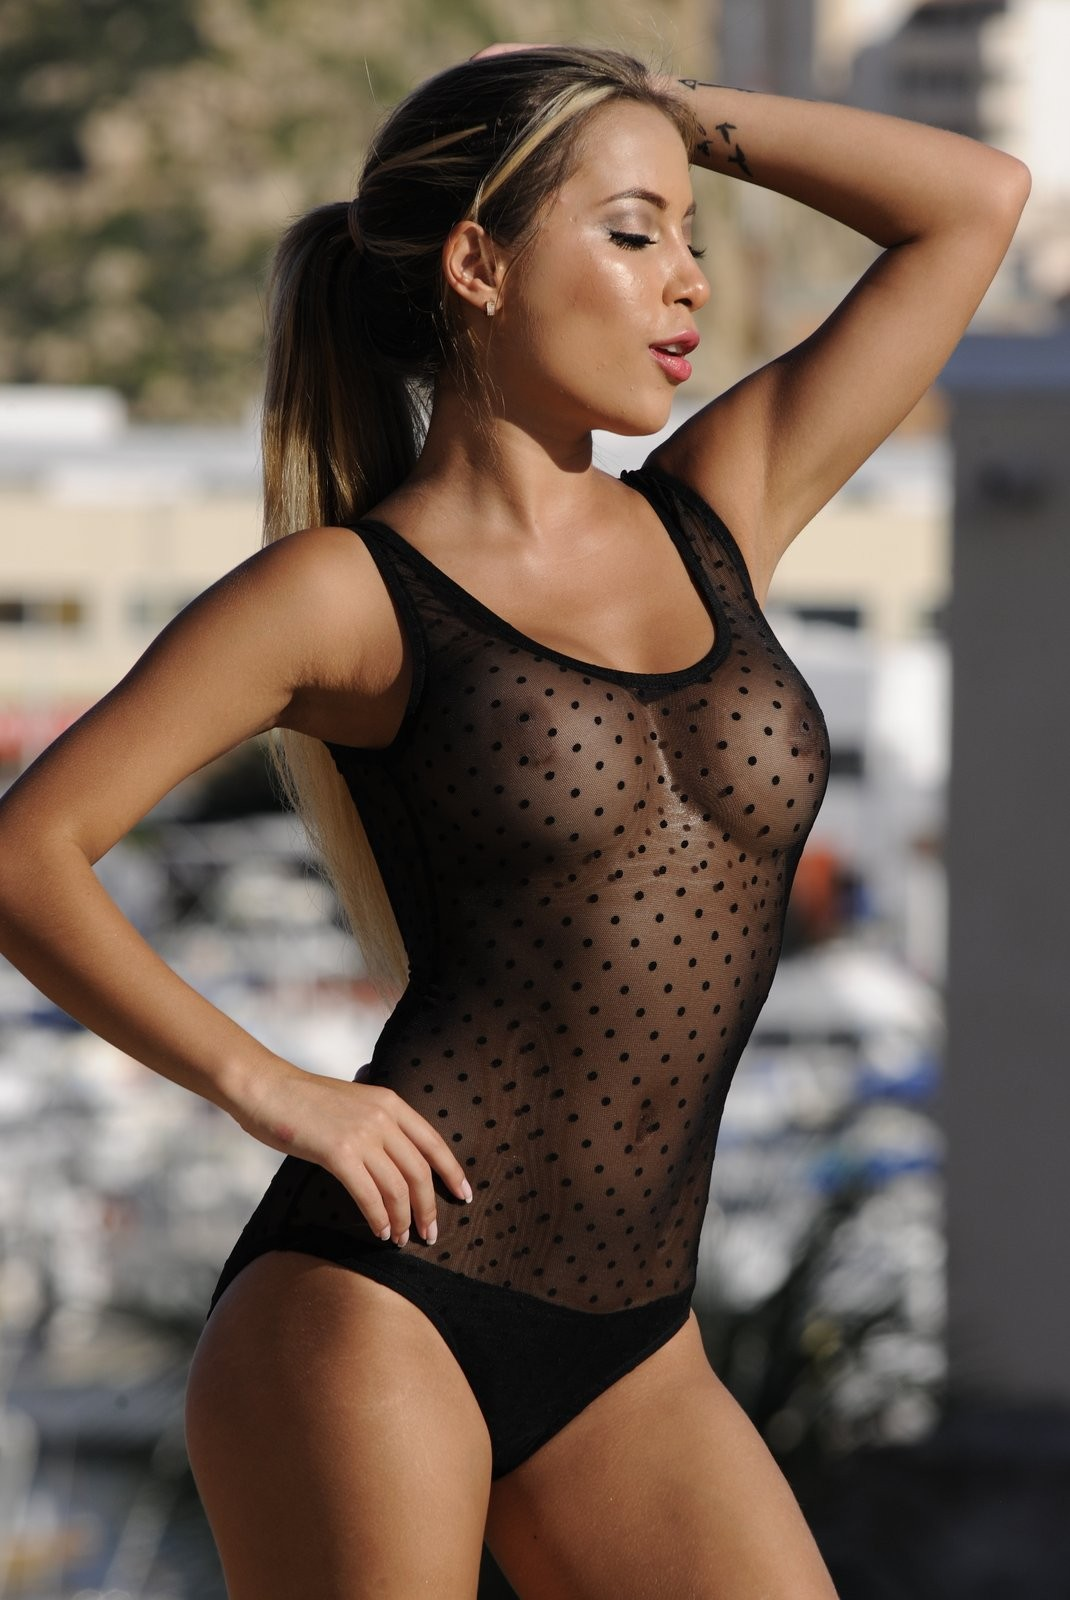 Girls in see through swimsuits